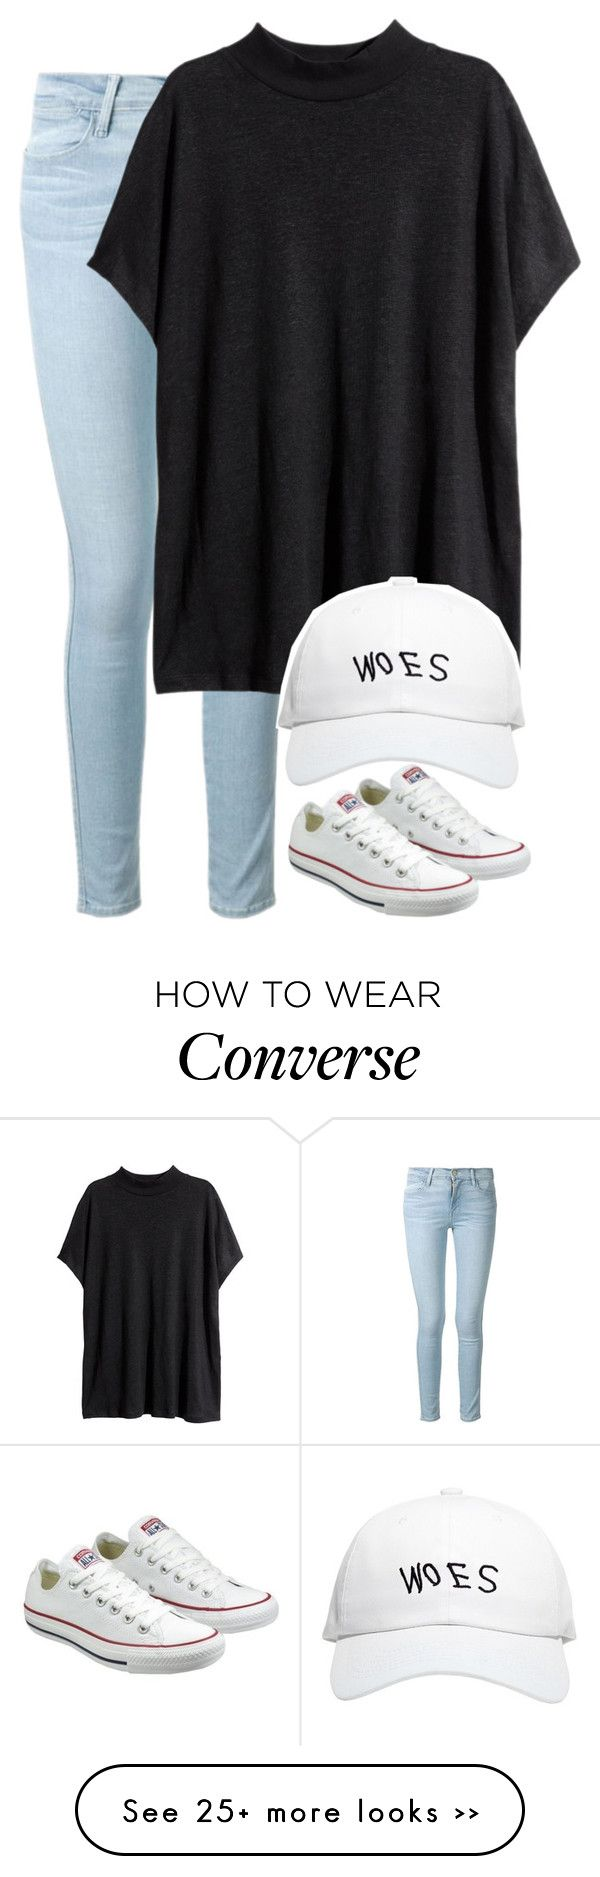 """""""Lovin' so hard"""" by fungirl1forlife on Polyvore featuring moda, Frame Denim, H&M, October's Very Own y Converse"""